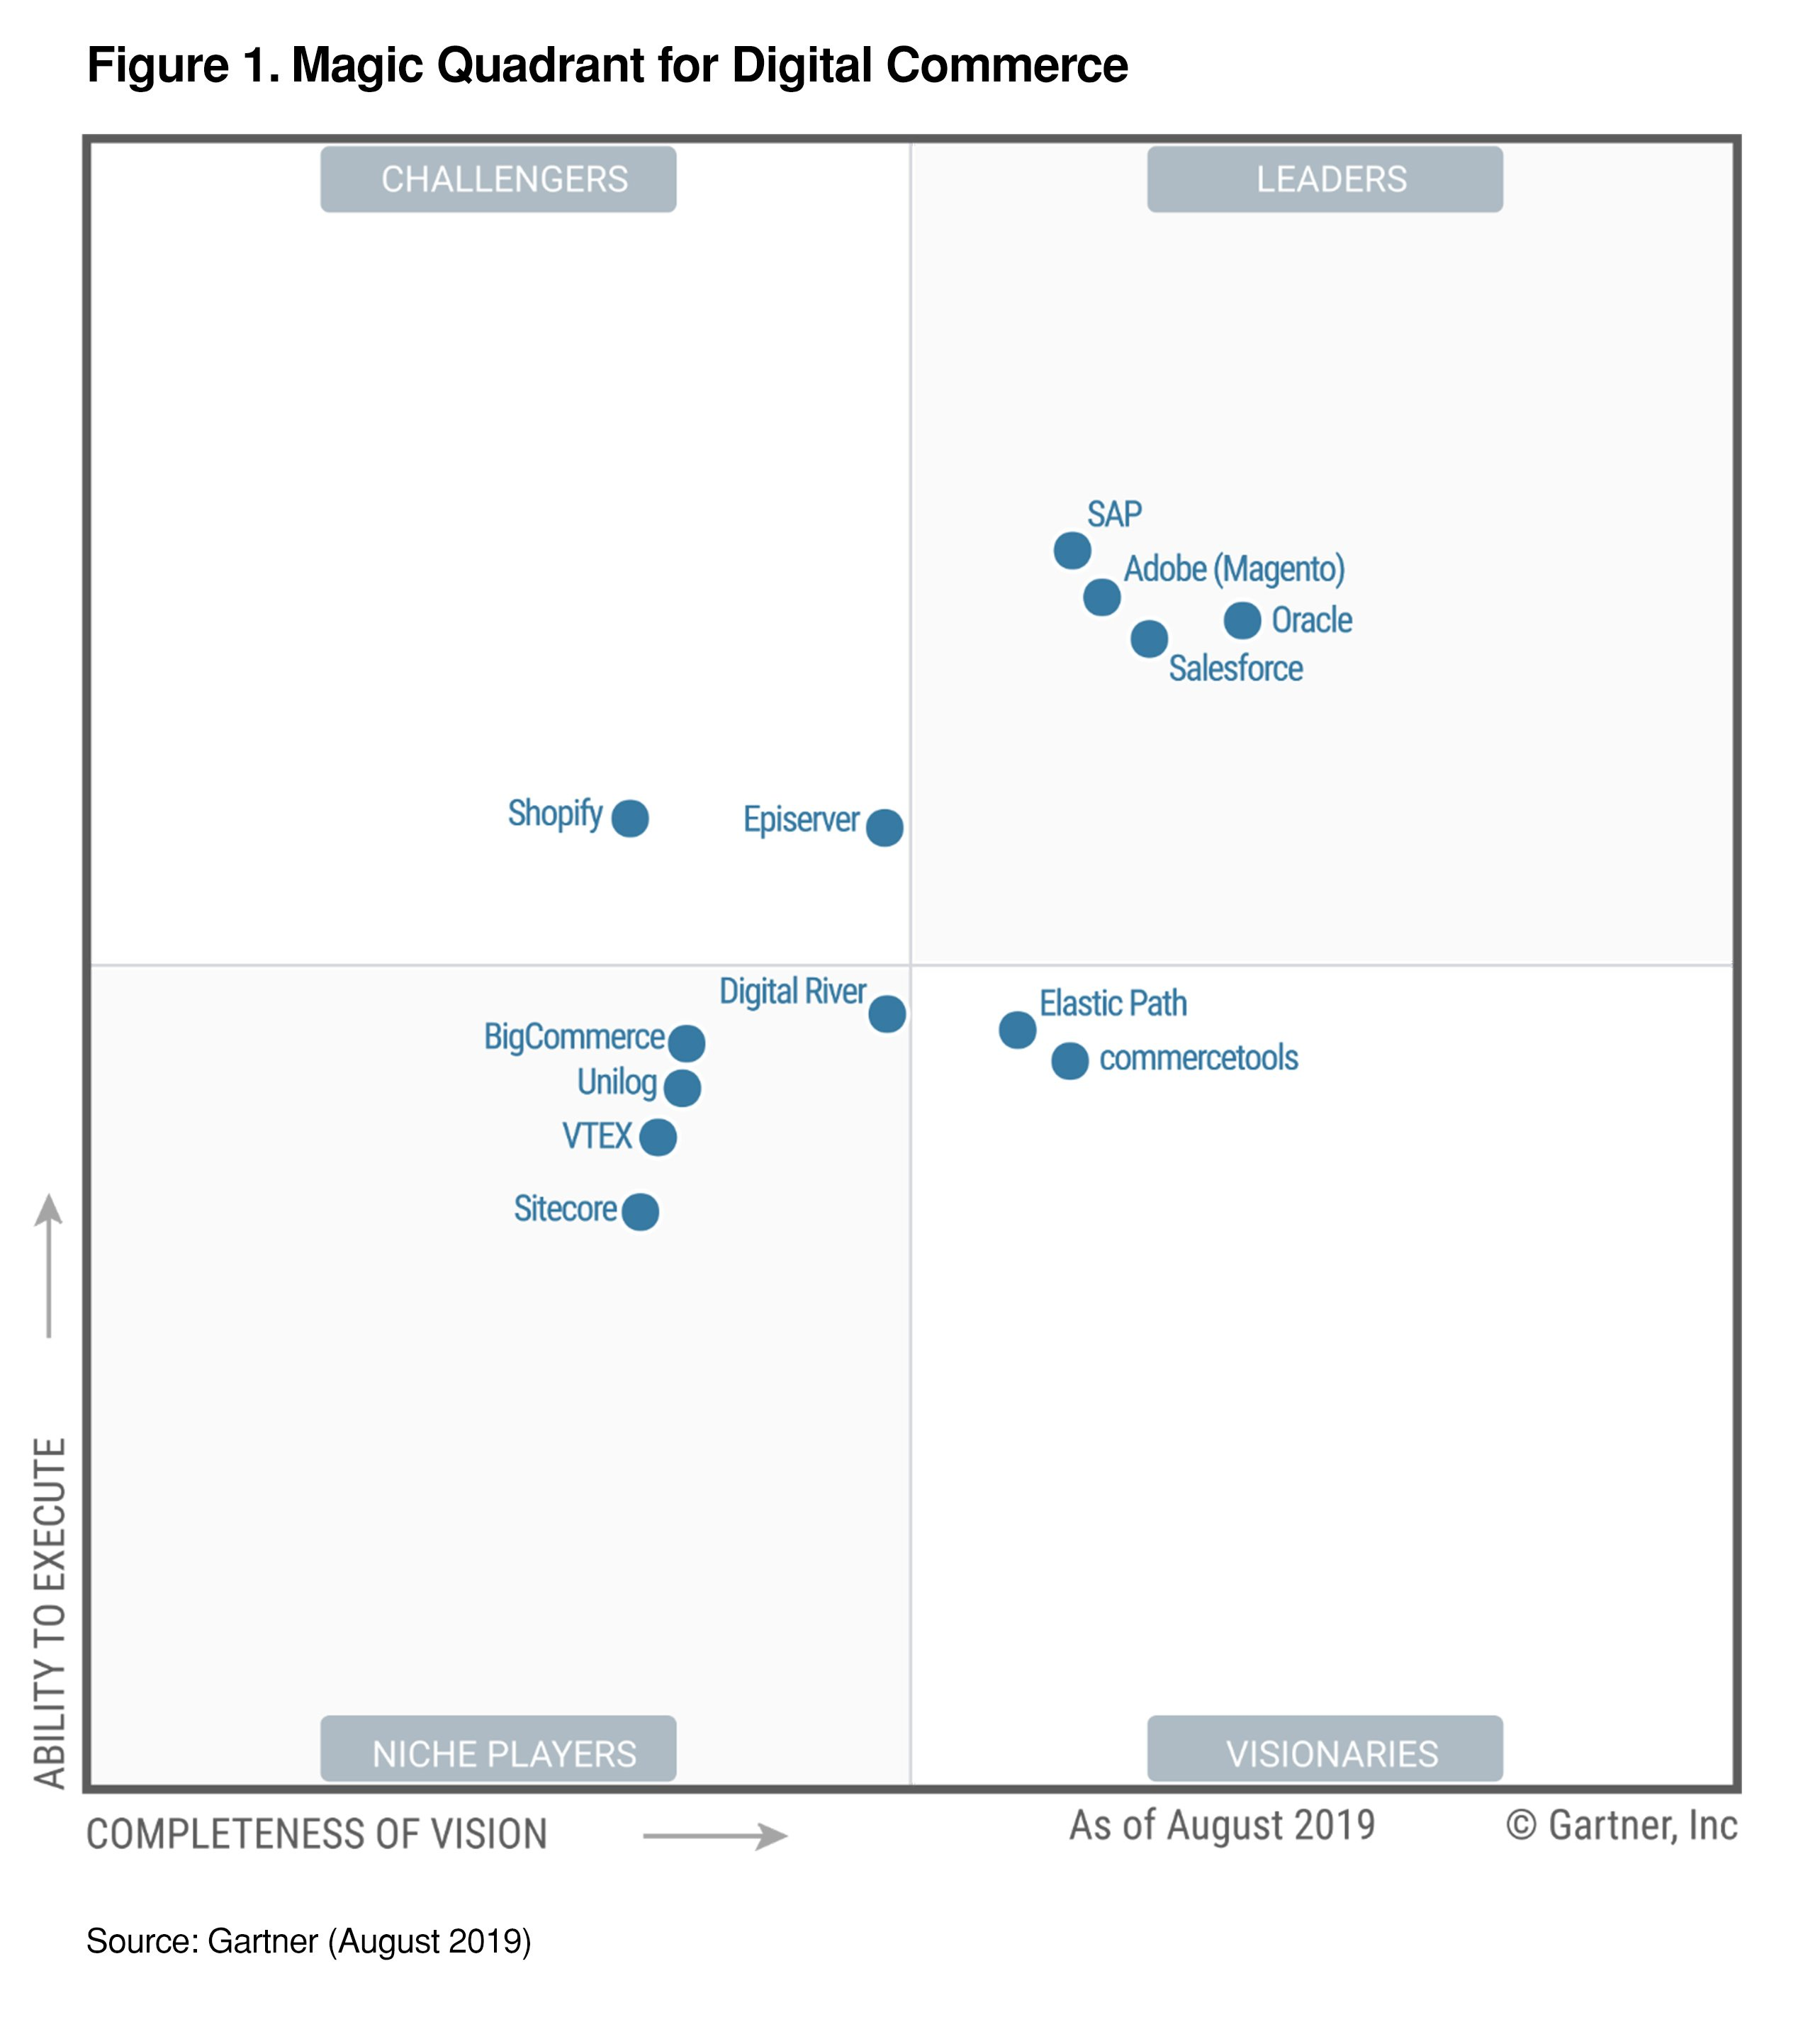 Magic Quadrant for Digital Commerce